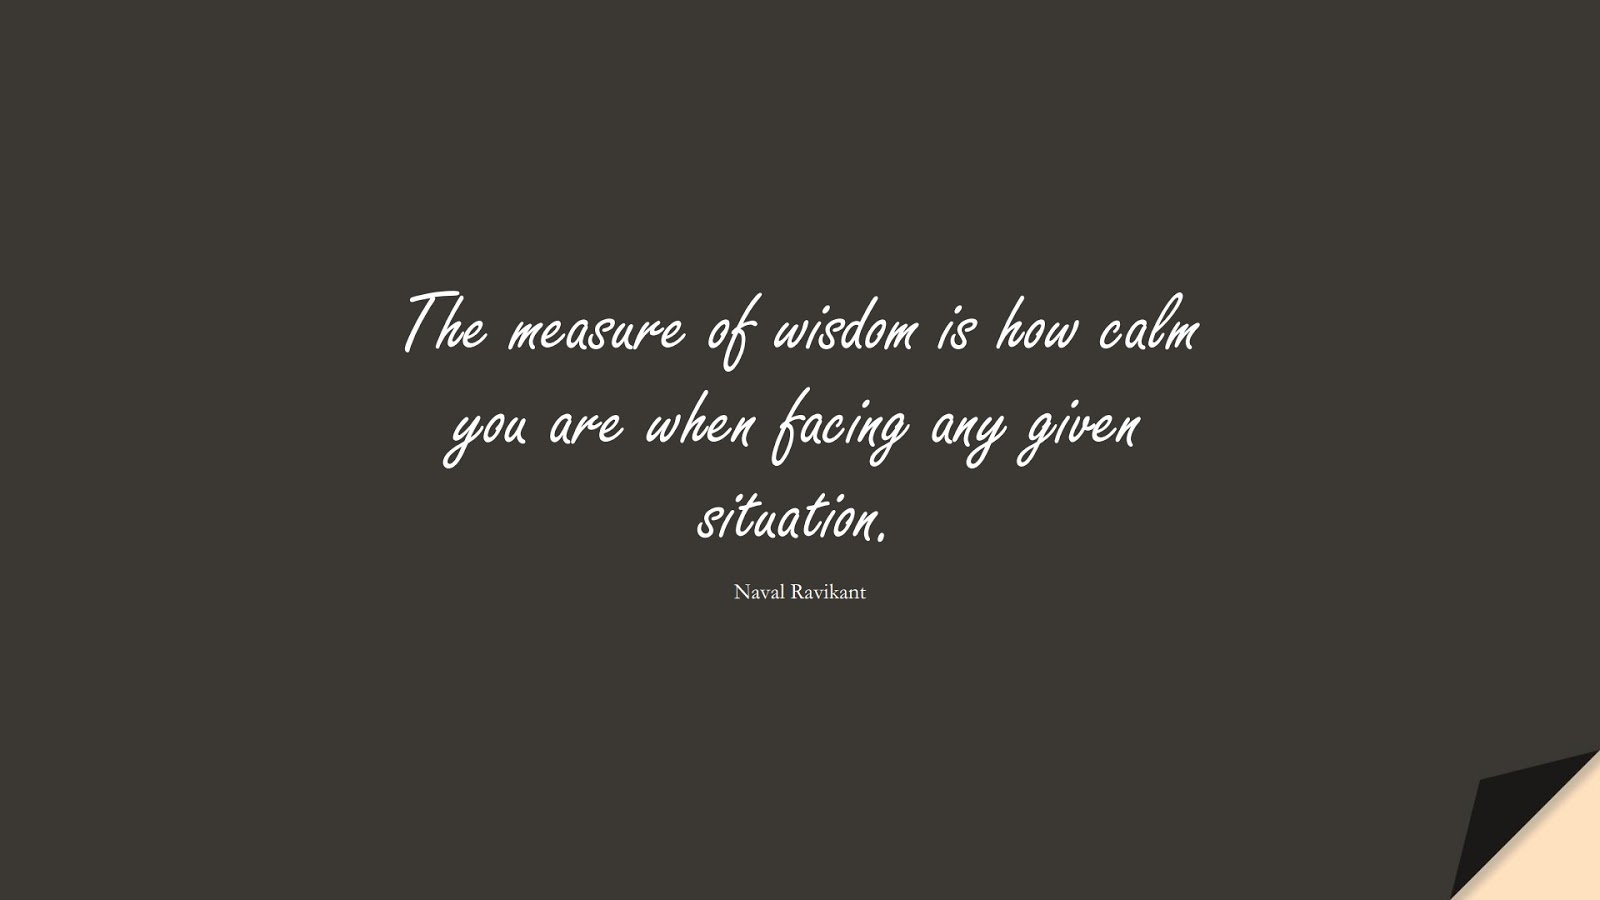 The measure of wisdom is how calm you are when facing any given situation. (Naval Ravikant);  #CalmQuotes